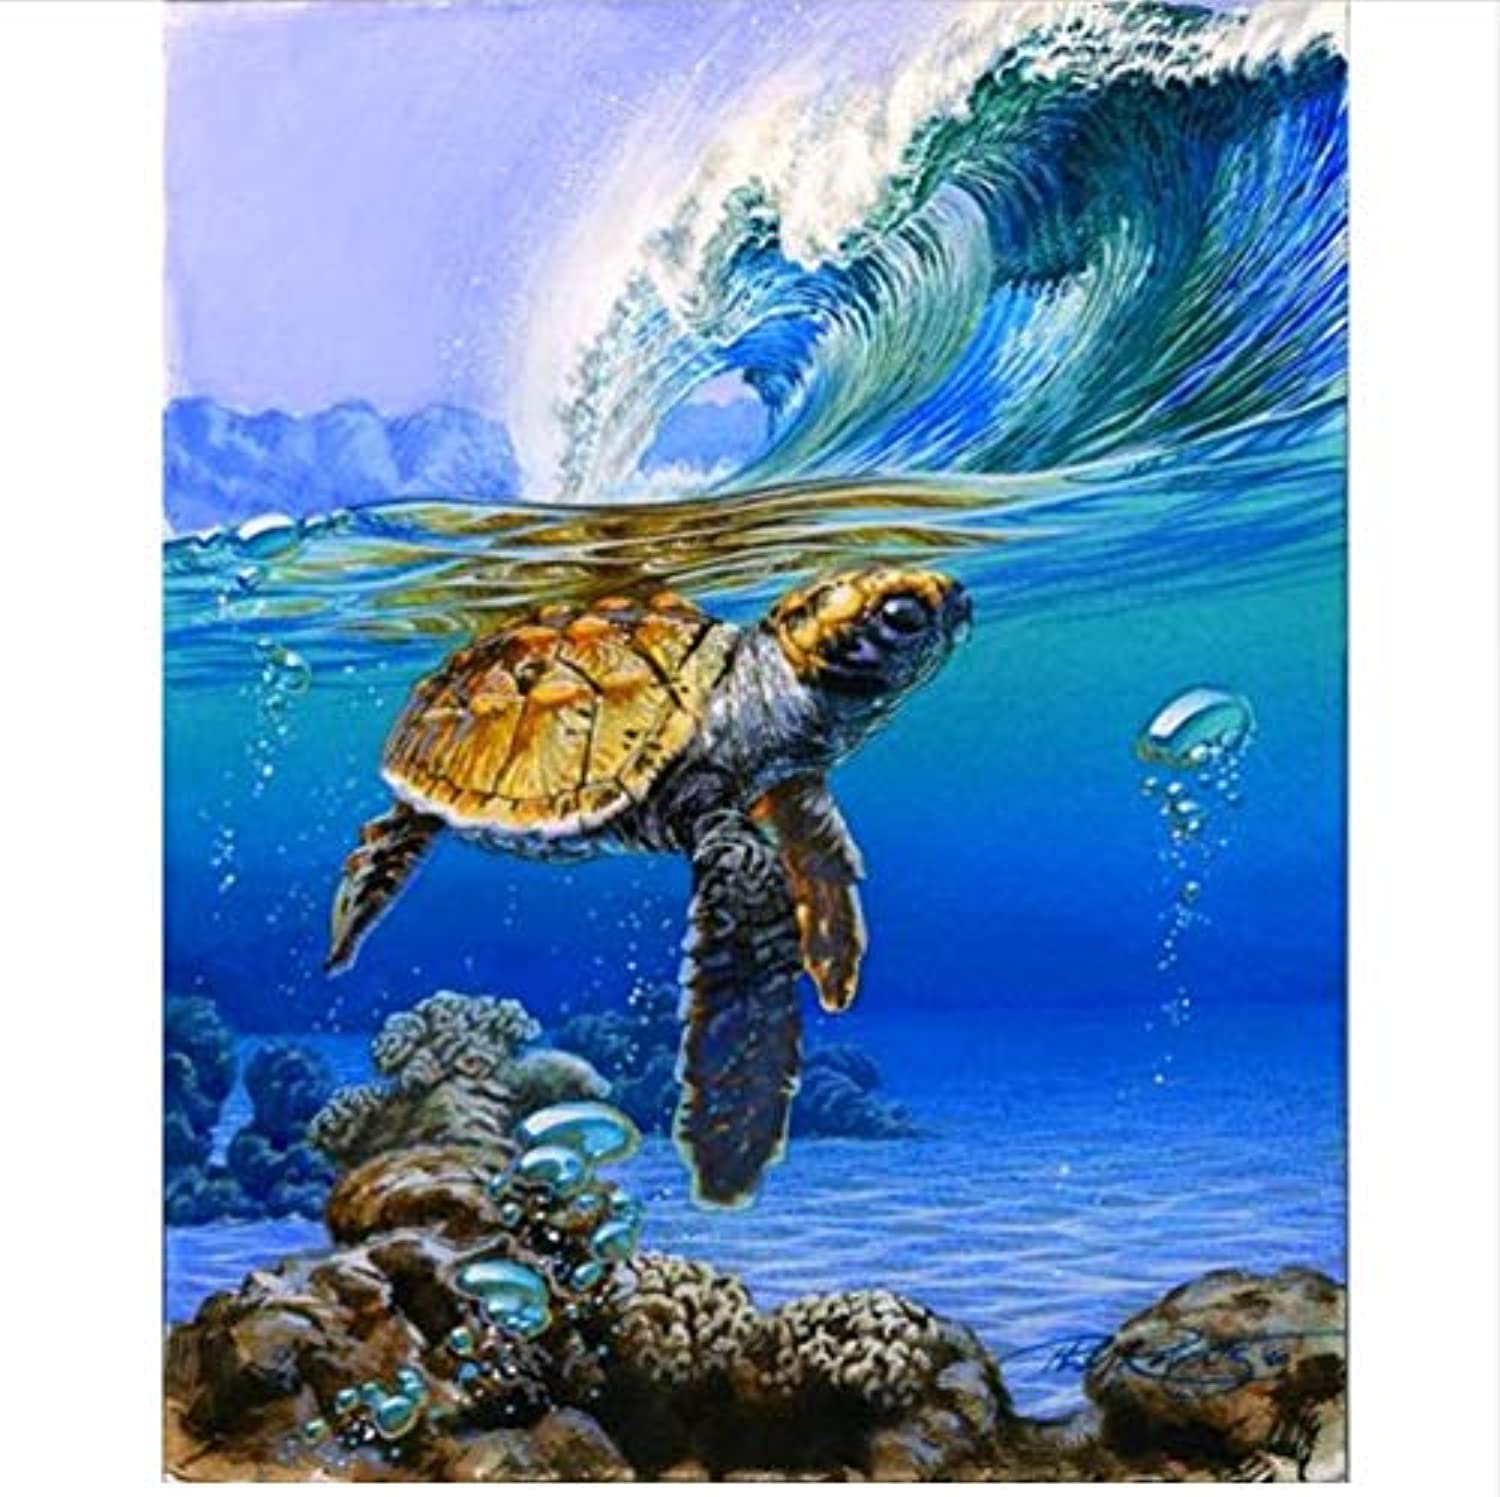 CAYYOU DIY Digital Painting By Numbers Sea Turtle Oil Painting Mural Kits coloring Wall Art Picture Gift  Framed  50x60cm